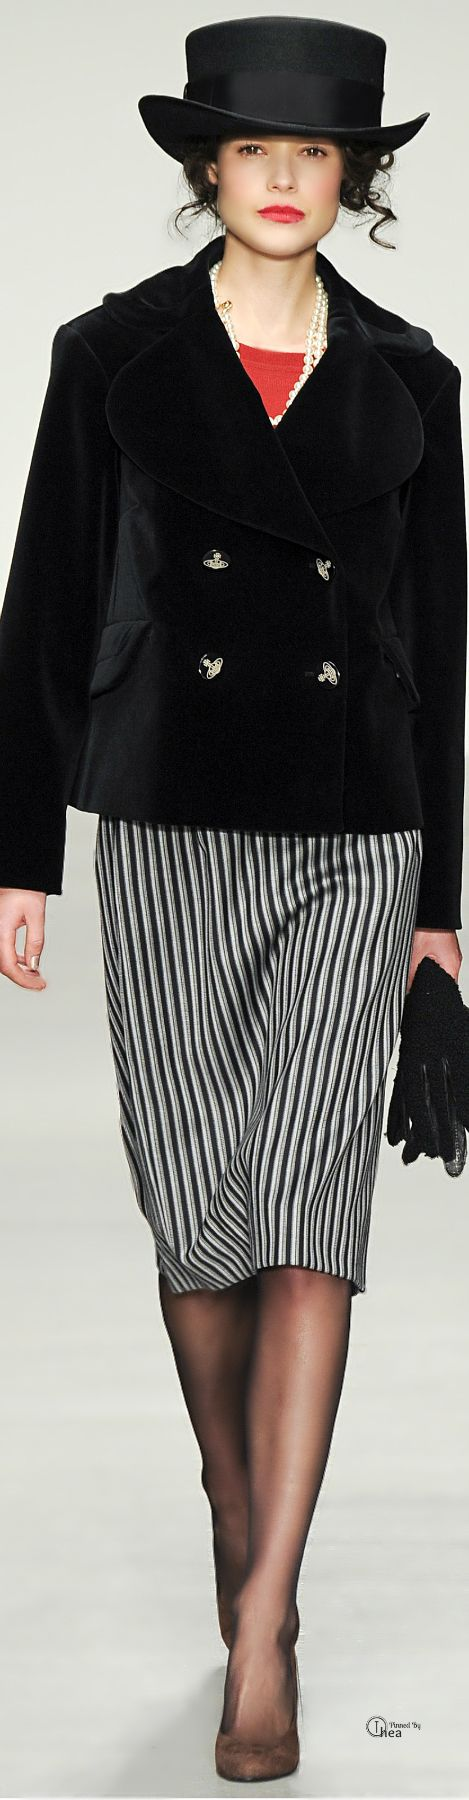 Vivienne Westwood Red Label ● Fall 2014. No hat for work